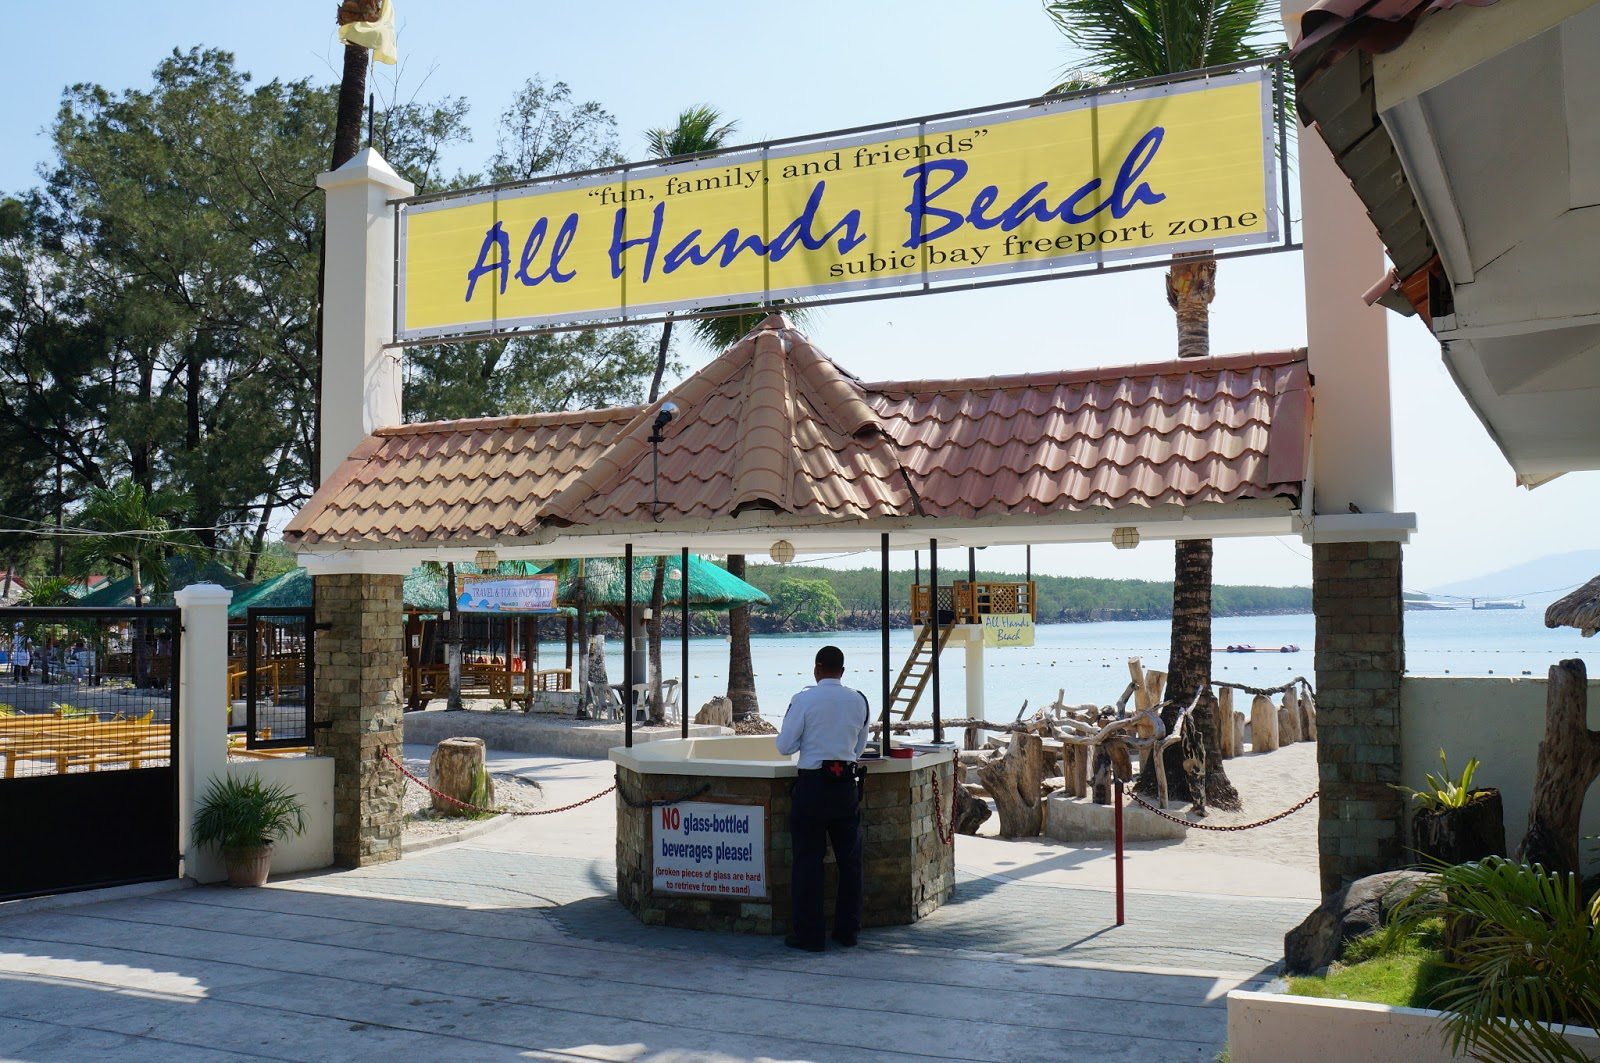 All Hands Beach Subic Bay Freeport Zones Resort For Everyone